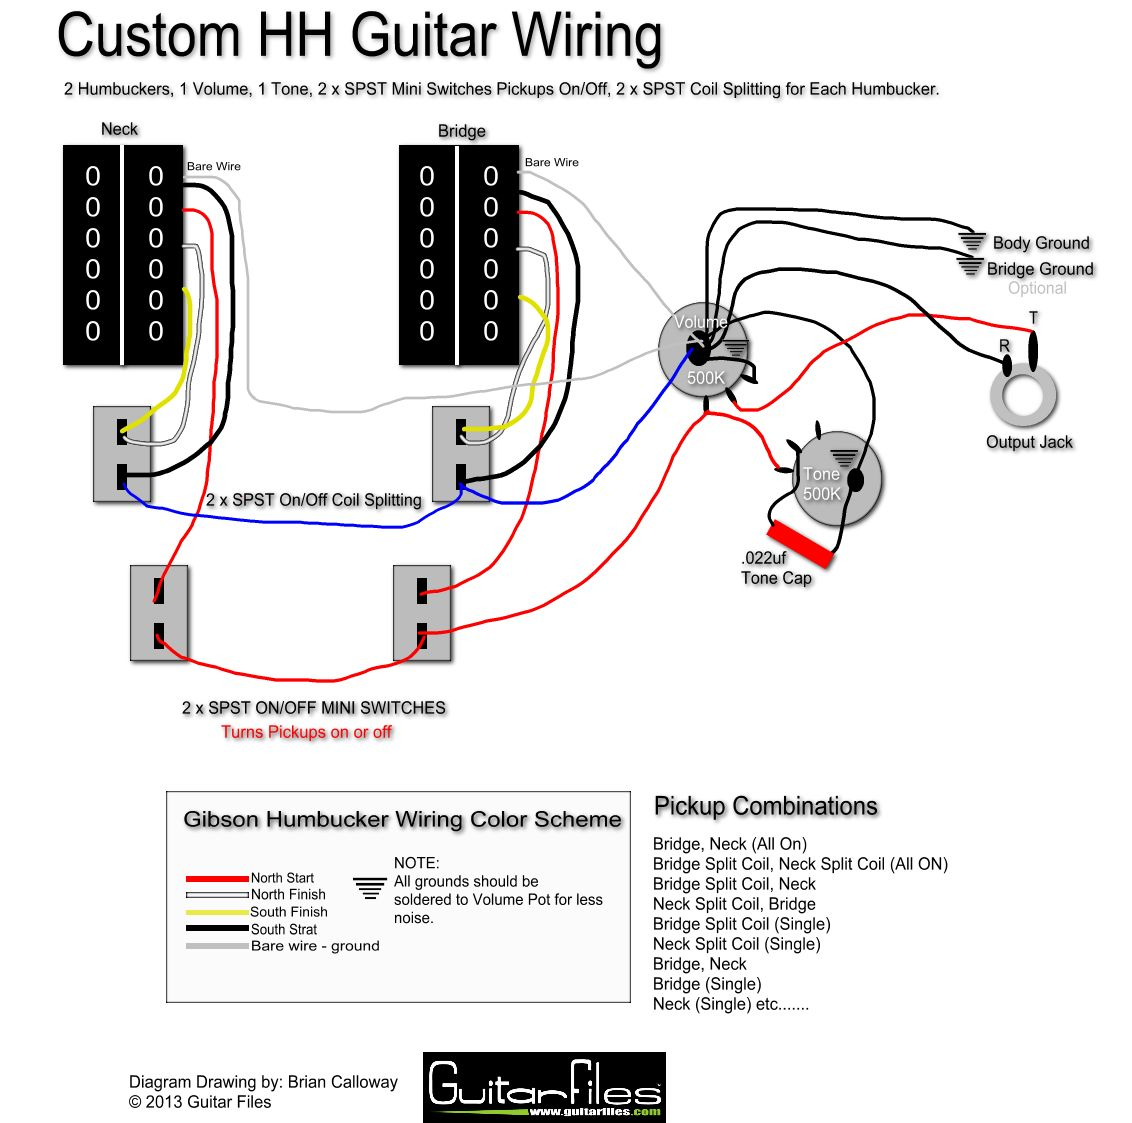 Custom HH Wiring Diagram With SPST Coil Splitting and SPST Switching on gibson les paul humbucker wiring diagram, emg humbucker wiring diagram, fender humbucker wiring diagram, ibanez humbucker wiring diagram, epiphone humbucker wiring diagram, seymour duncan humbucker wiring diagram, bridge humbucker wiring diagram, pearly gates humbucker wiring diagram, dimarzio humbucker wiring diagram, bass humbucker wiring diagram, strat humbucker wiring diagram,